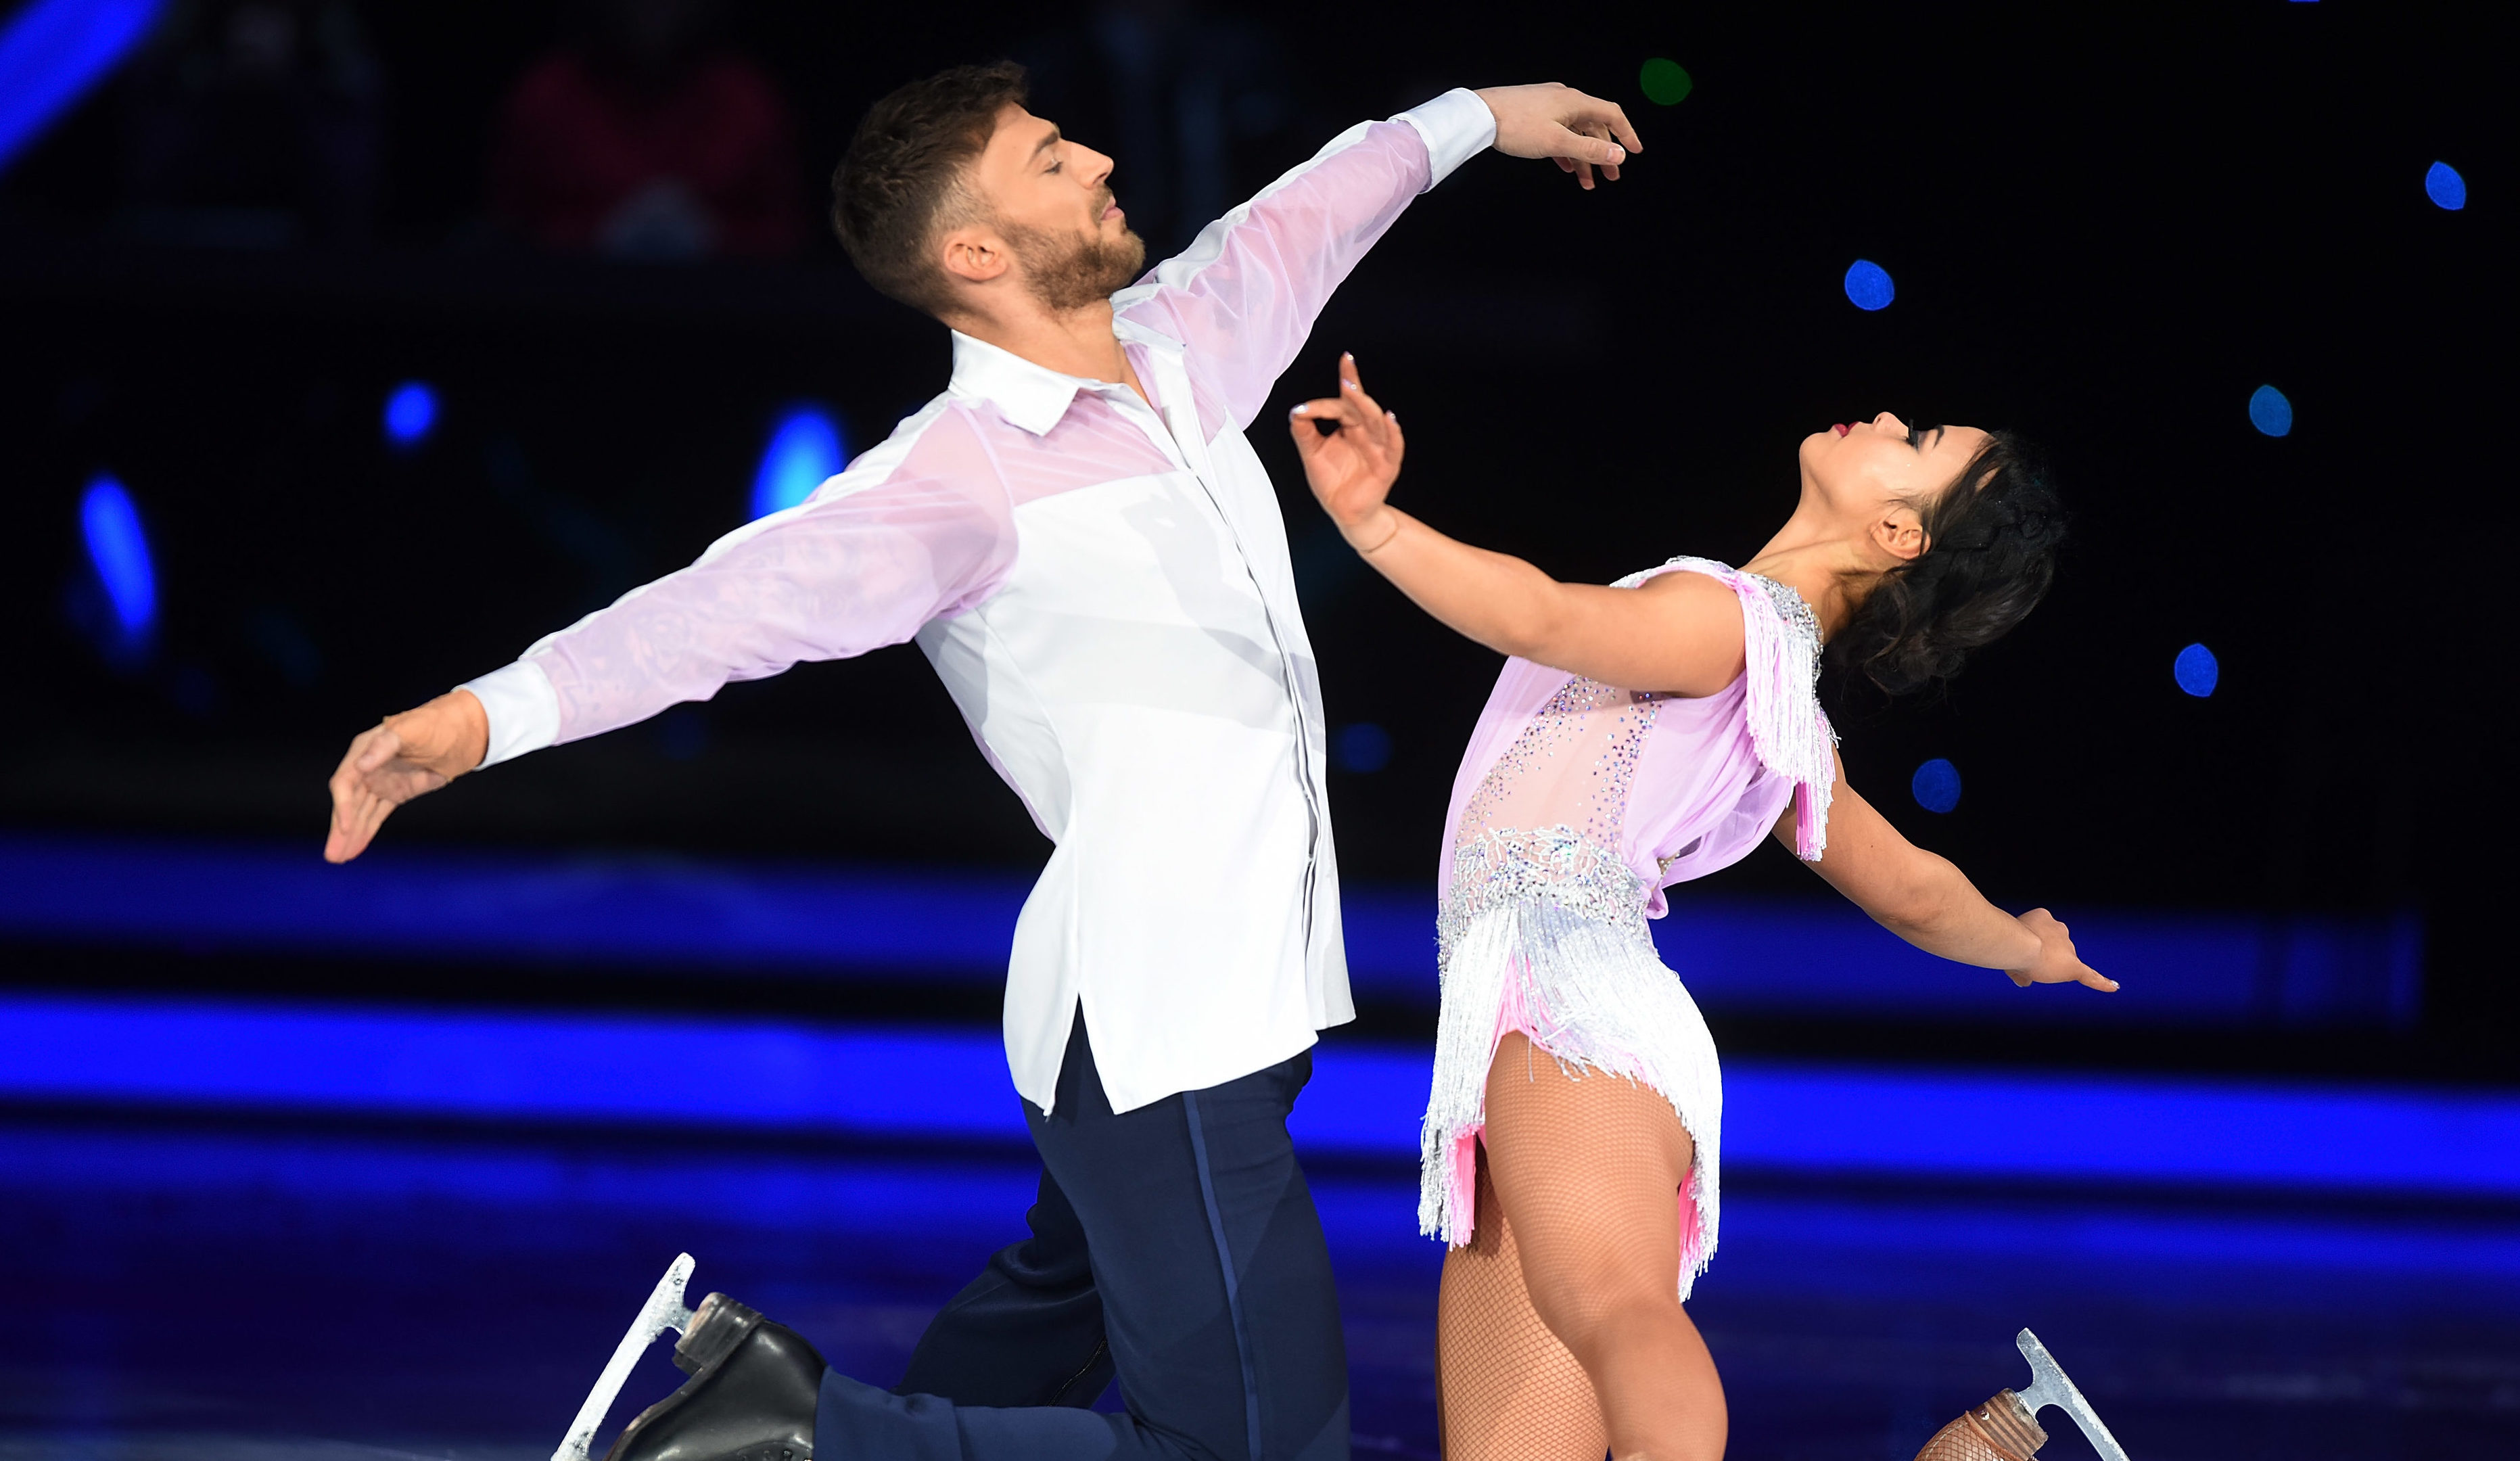 Jake and Vanessa Bauer starring in the Dancing on Ice Live Tour (Dave J Hogan/Getty Images)